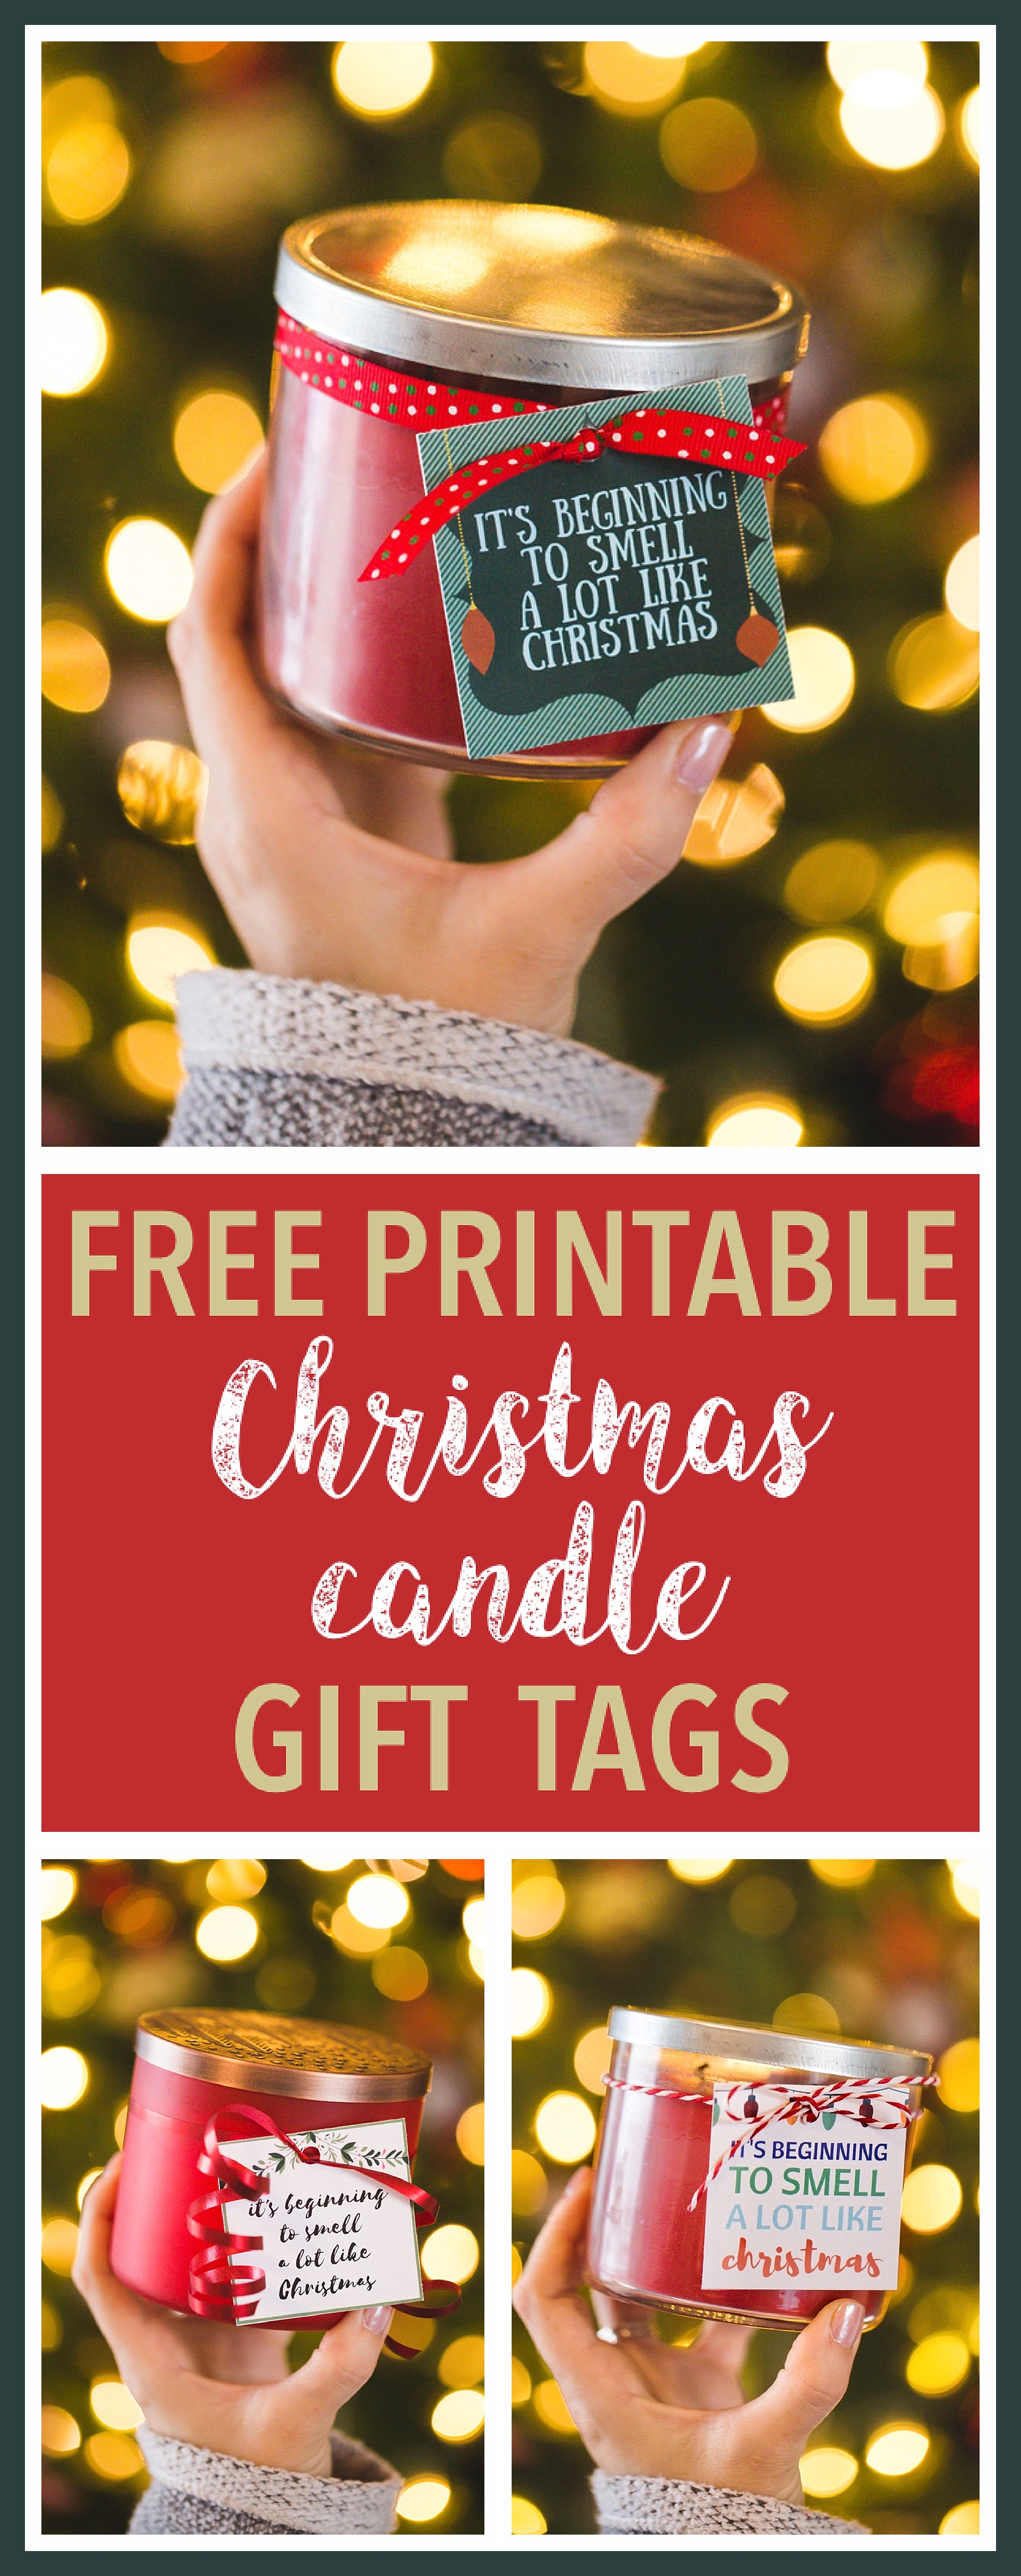 photo relating to Free Printable Christmas Name Tags called Absolutely free Printable Xmas Reward Tags for Candles - 6 Intelligent